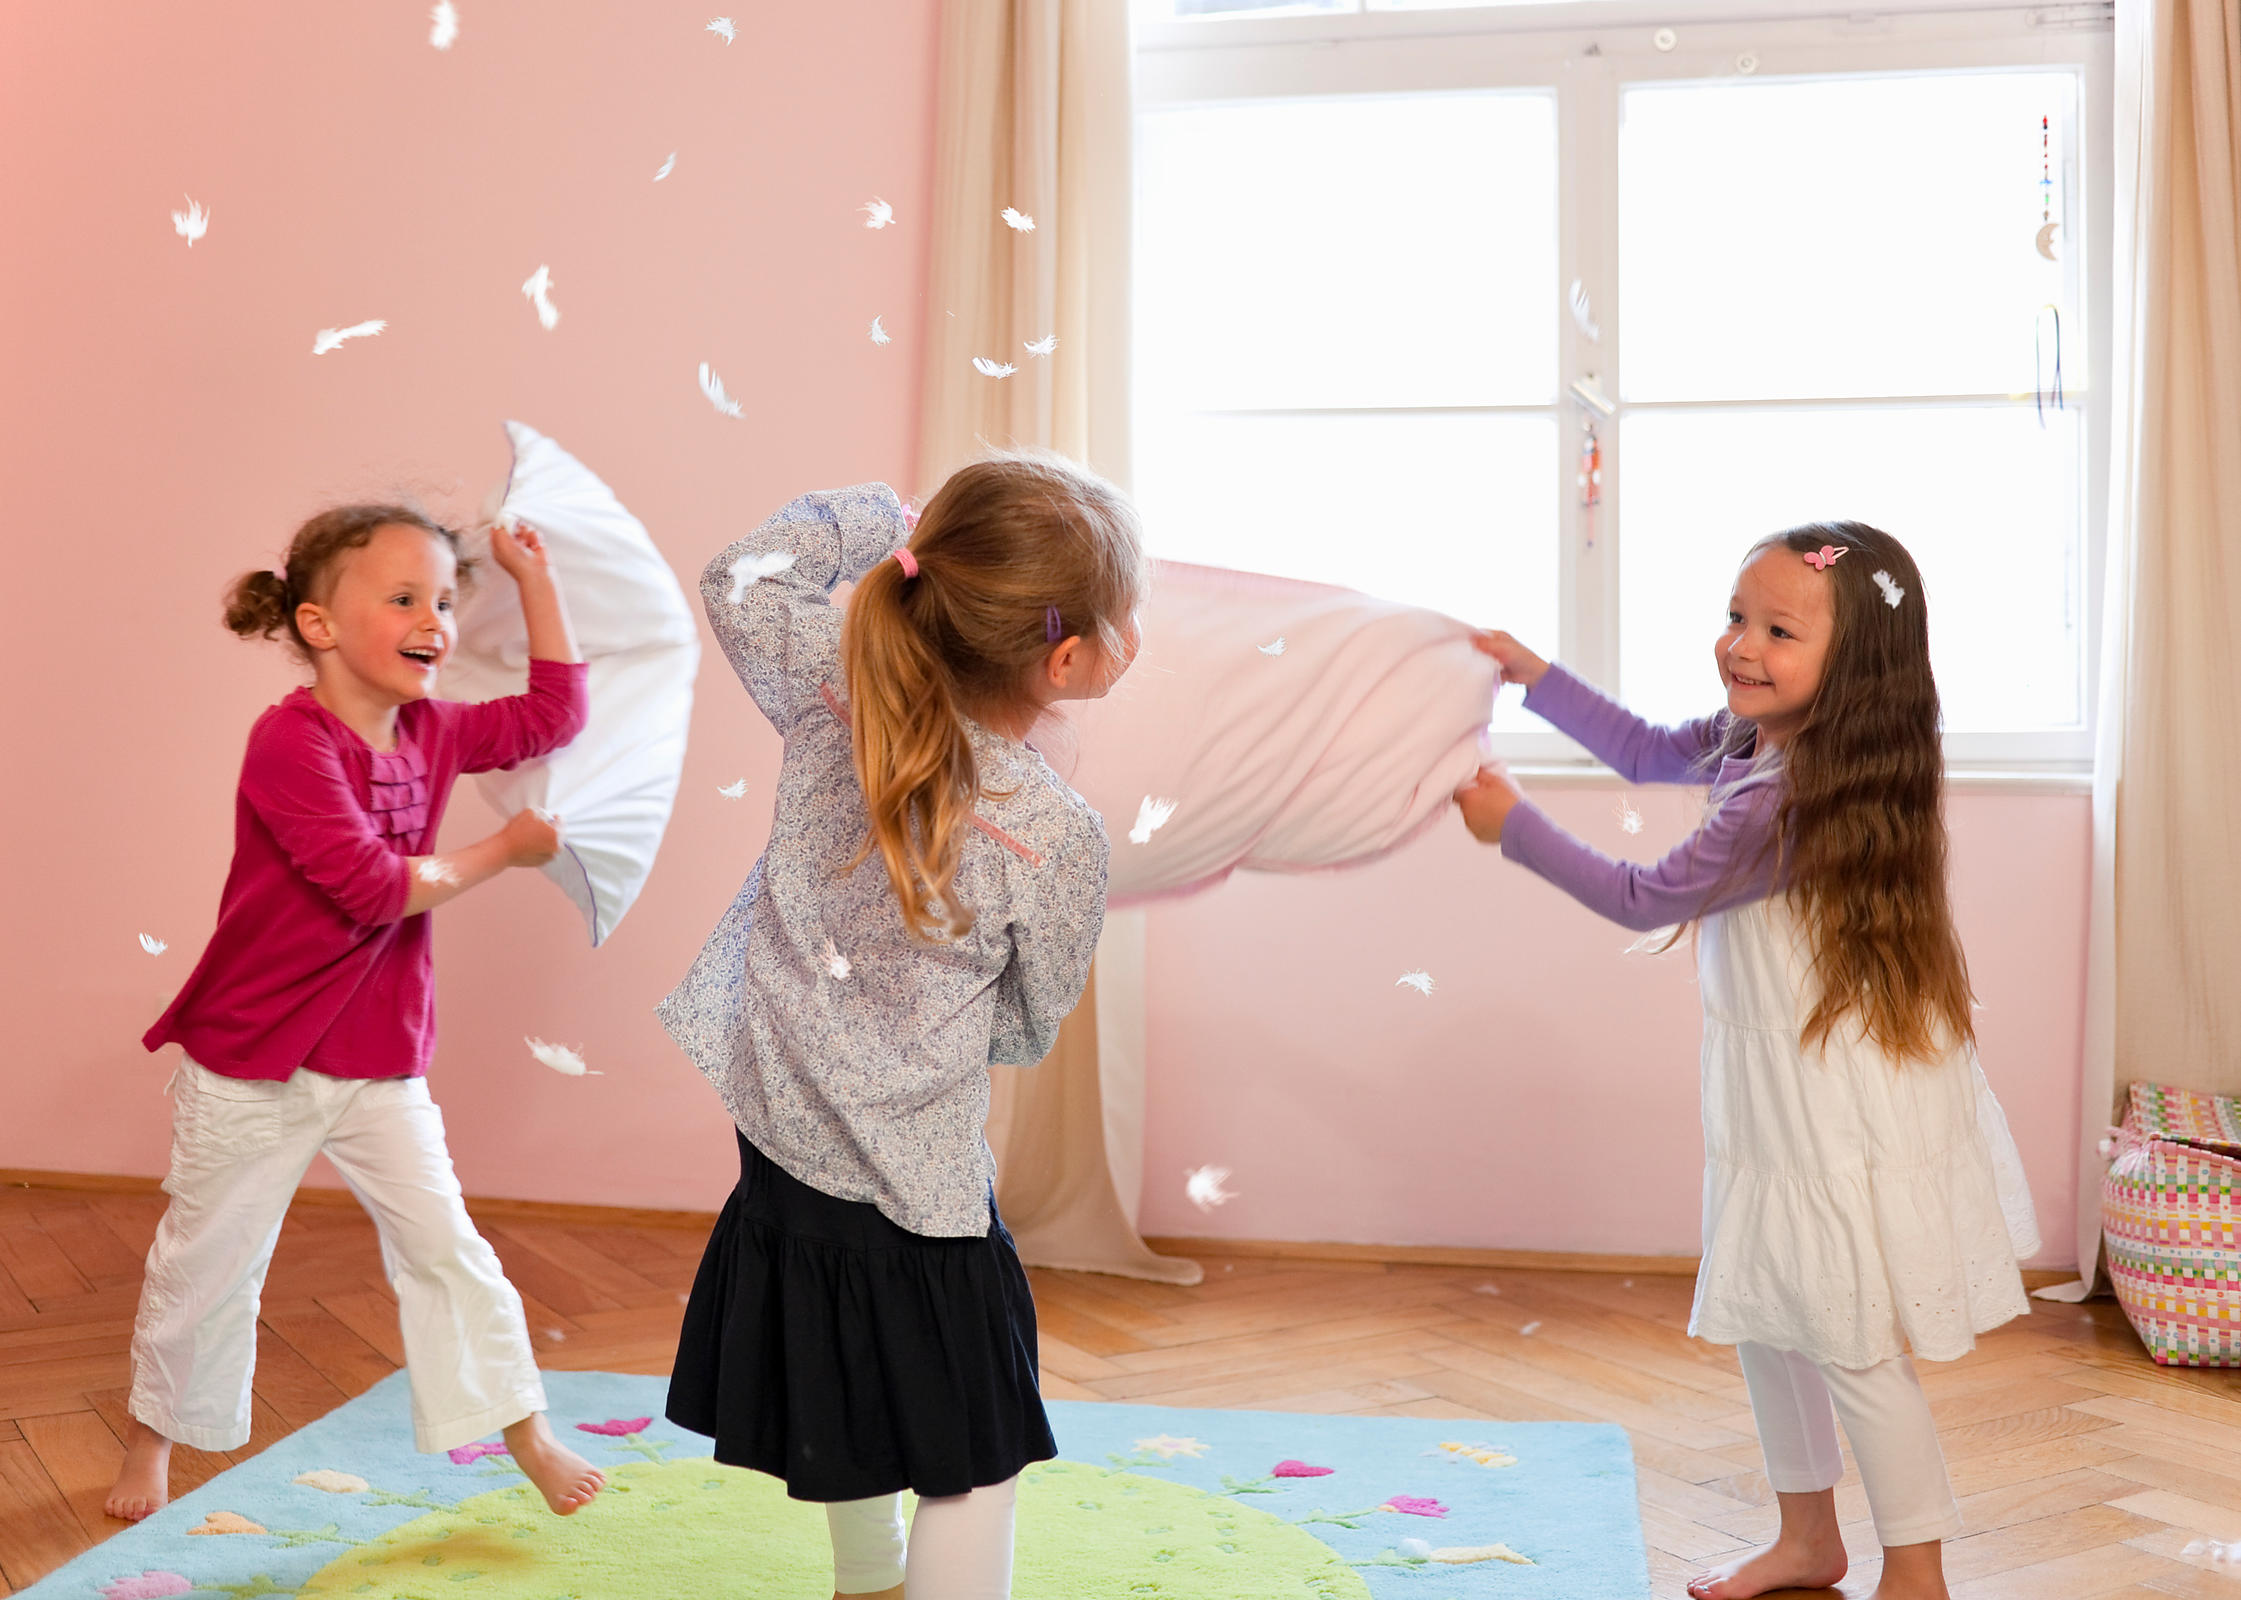 Girls having a pillow fight